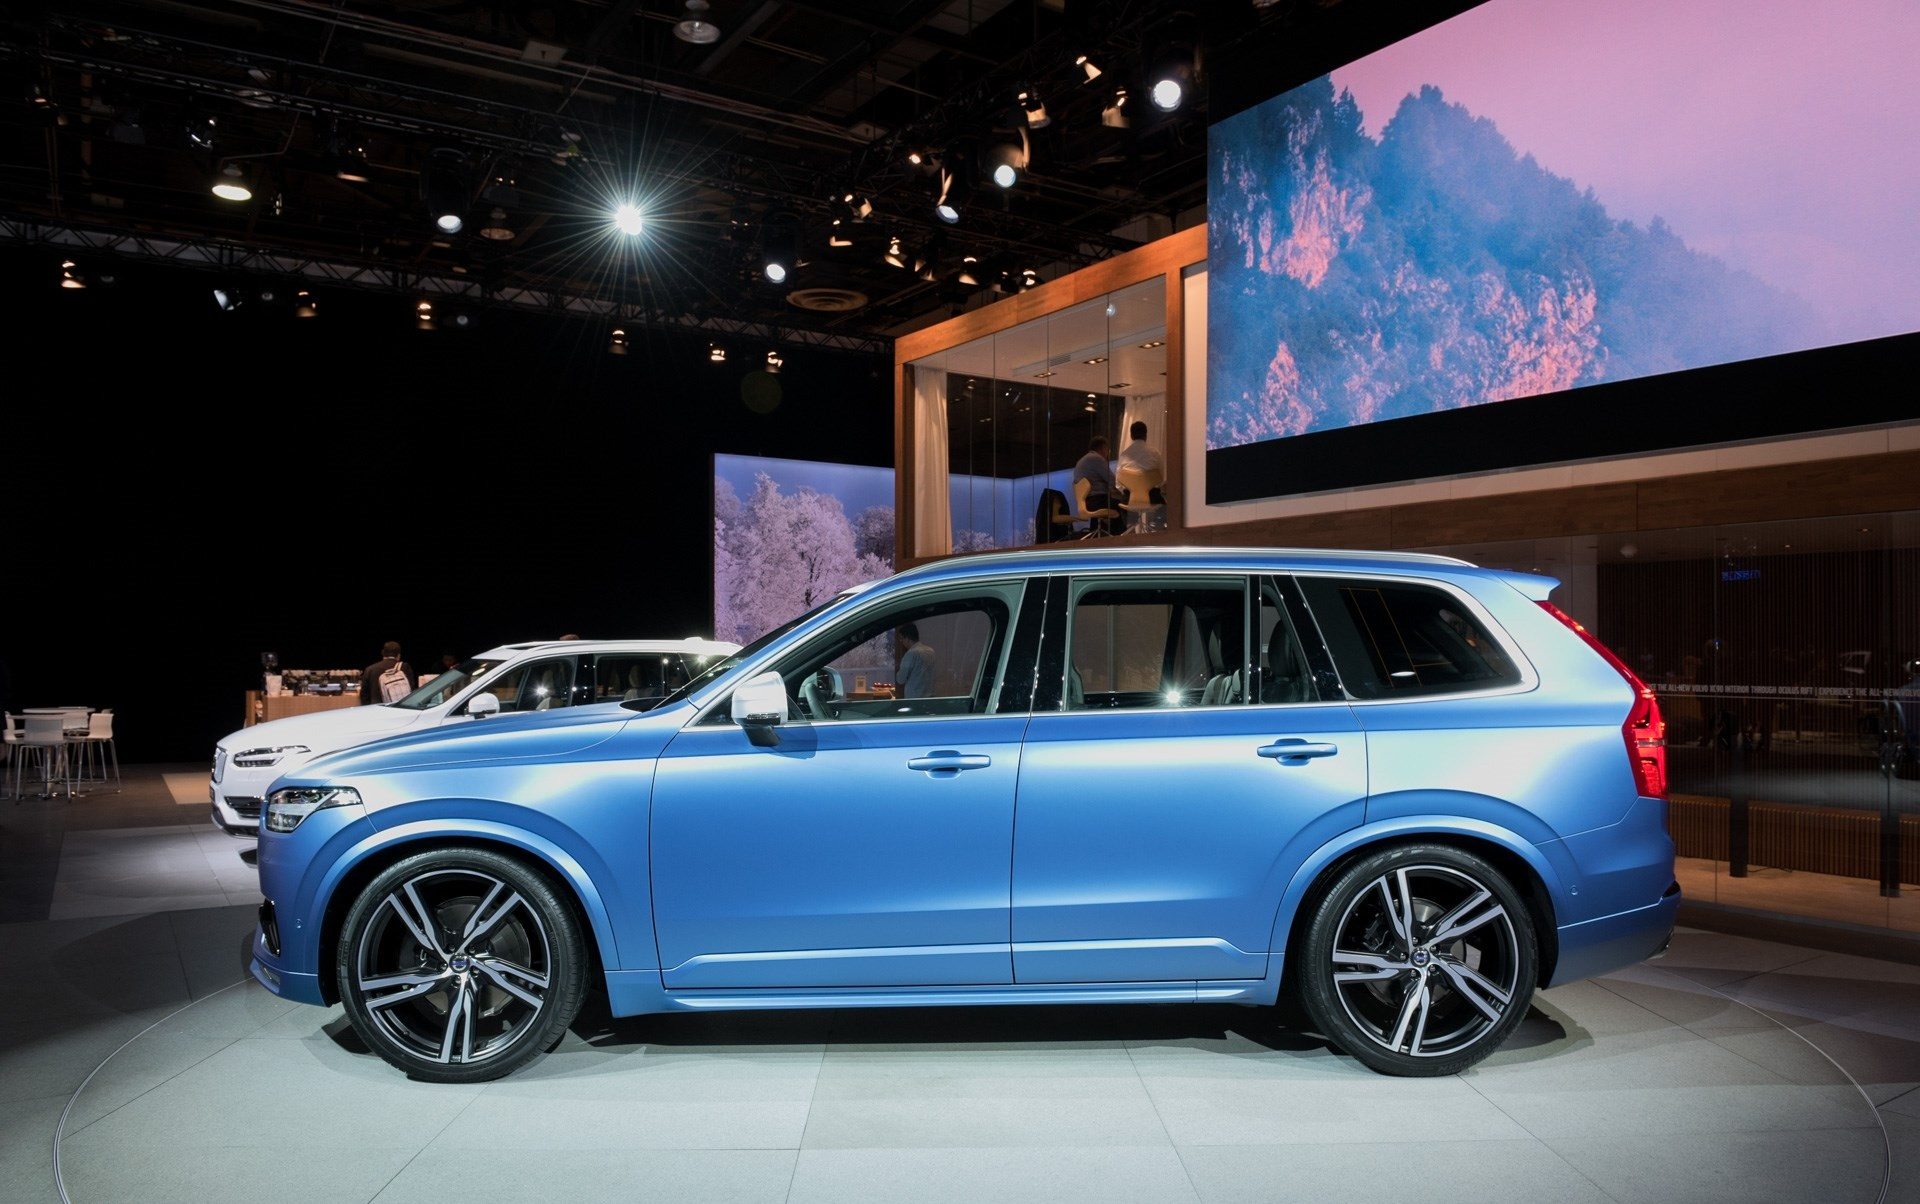 2016 Volvo Xc90 R-Design Left Side Photo